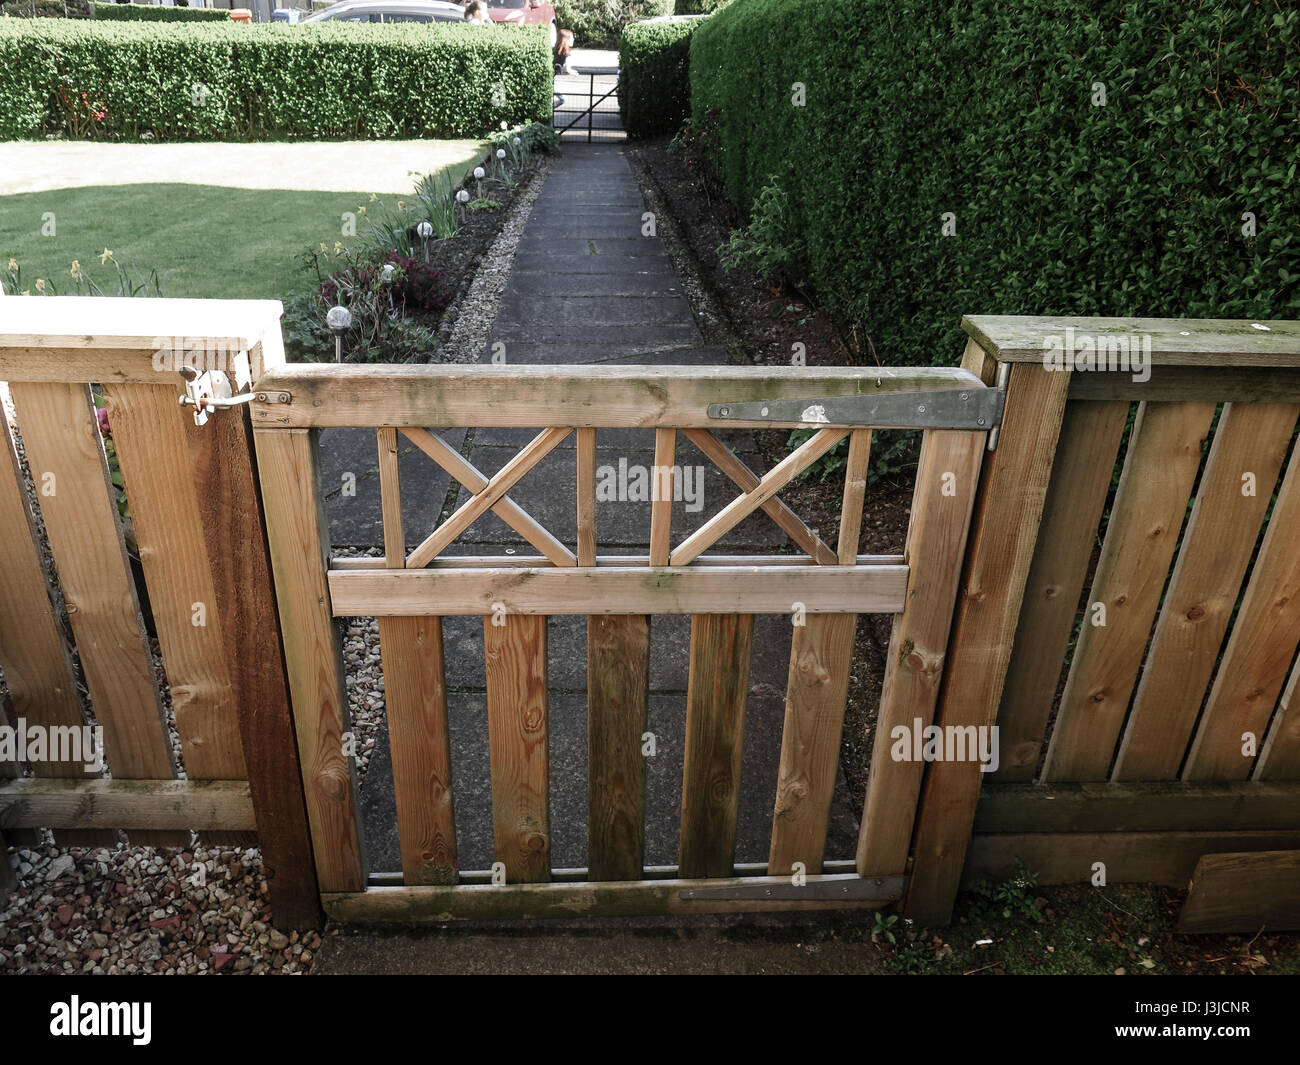 Wooden Garden Gate And Path   Stock Image